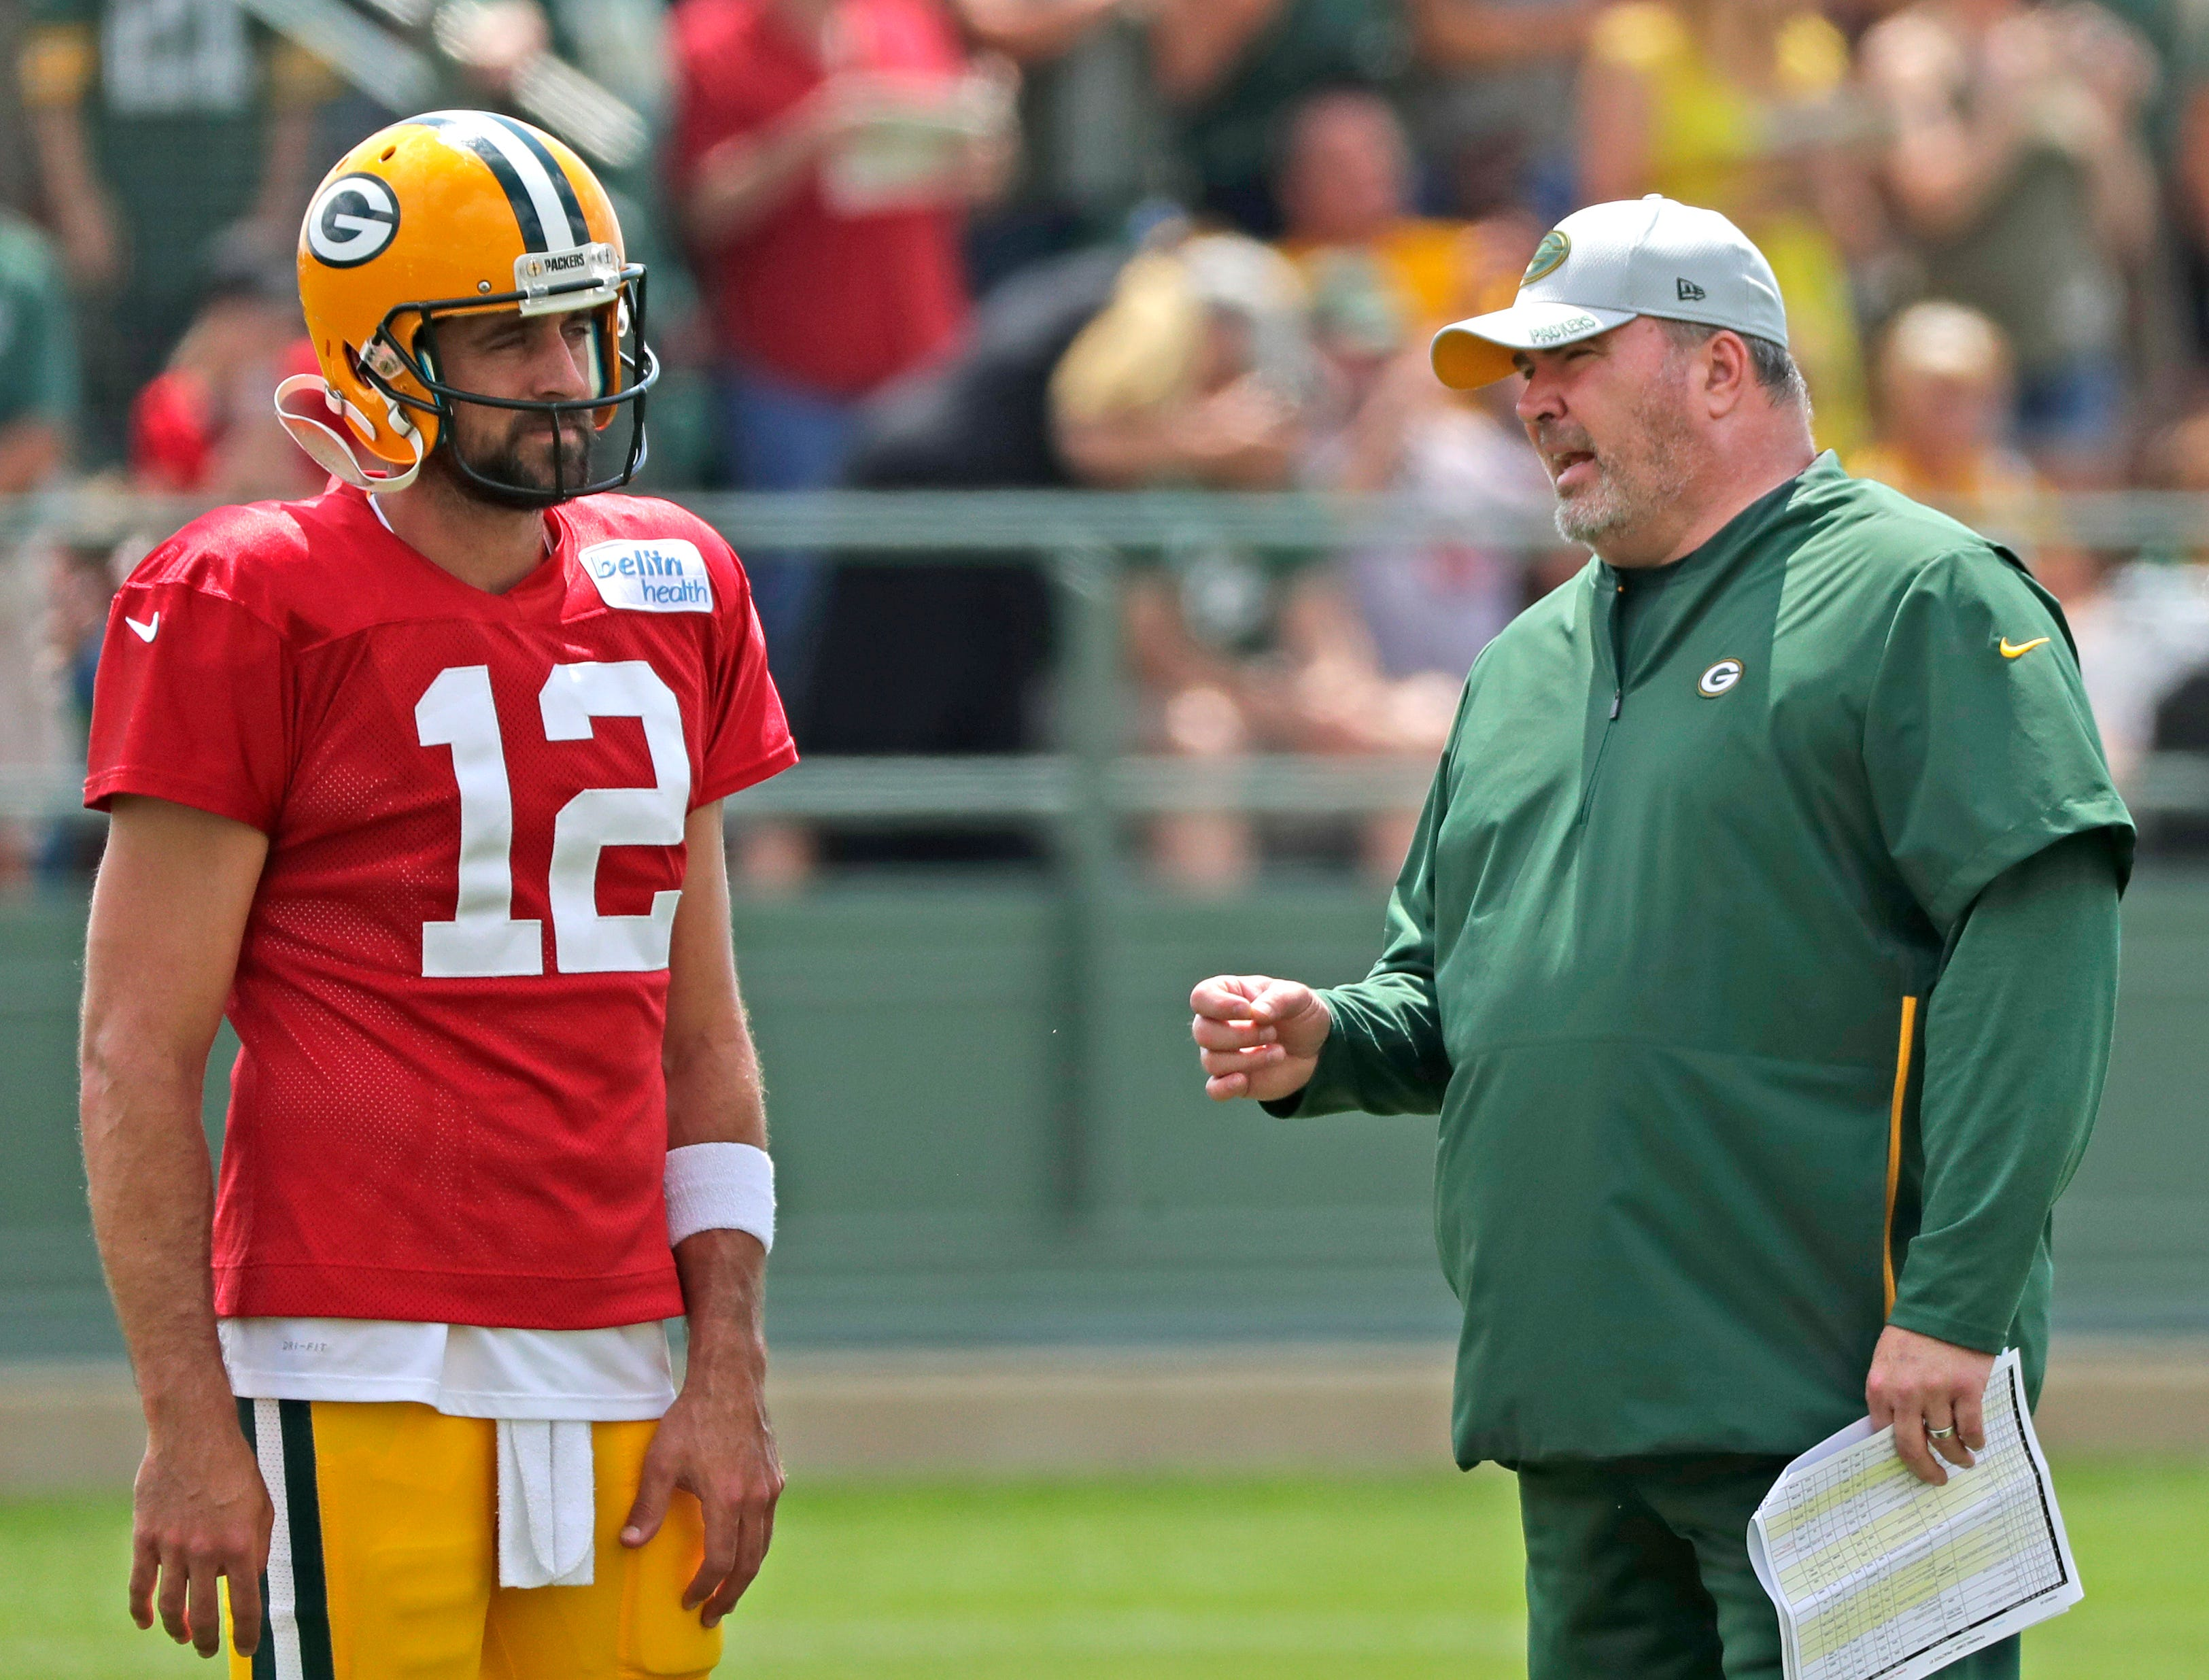 Green Bay Packers quarterback Aaron Rodgers (12) talks to head coach Mike McCarthy during training camp practice at Ray Nitschke Field on Friday, August 3, 2018 in Ashwaubenon, Wis. 